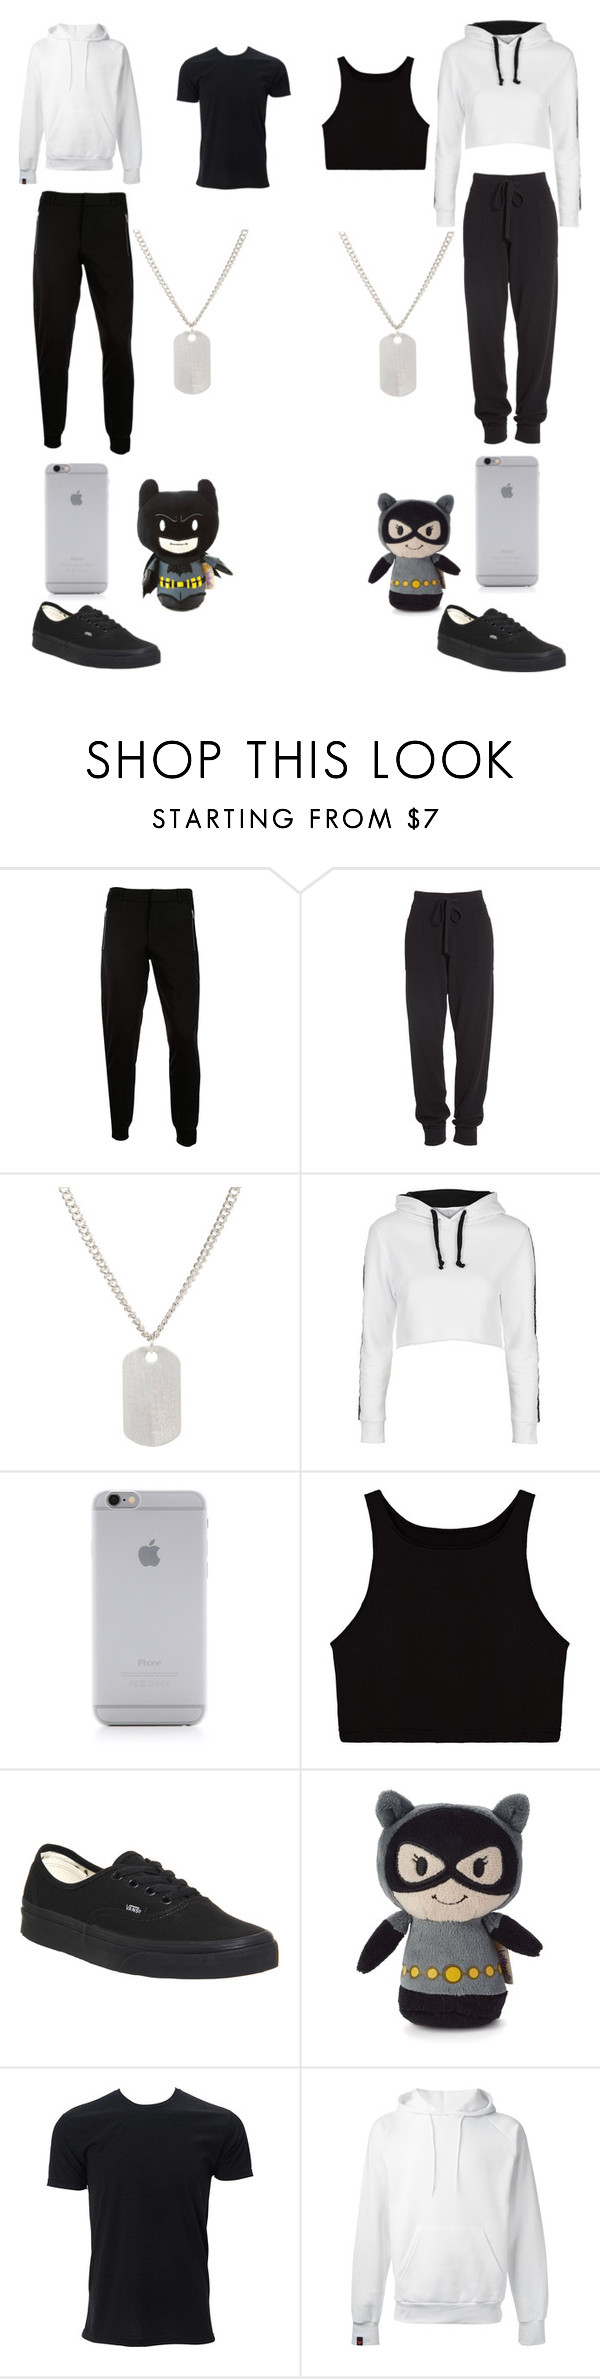 """Untitled #19"" by stephanie-brown13 ❤ liked on Polyvore featuring McQ by Alexander McQueen, Donna Karan, Loren Stewart, Topshop, Native Union, Vans and SWEAR"